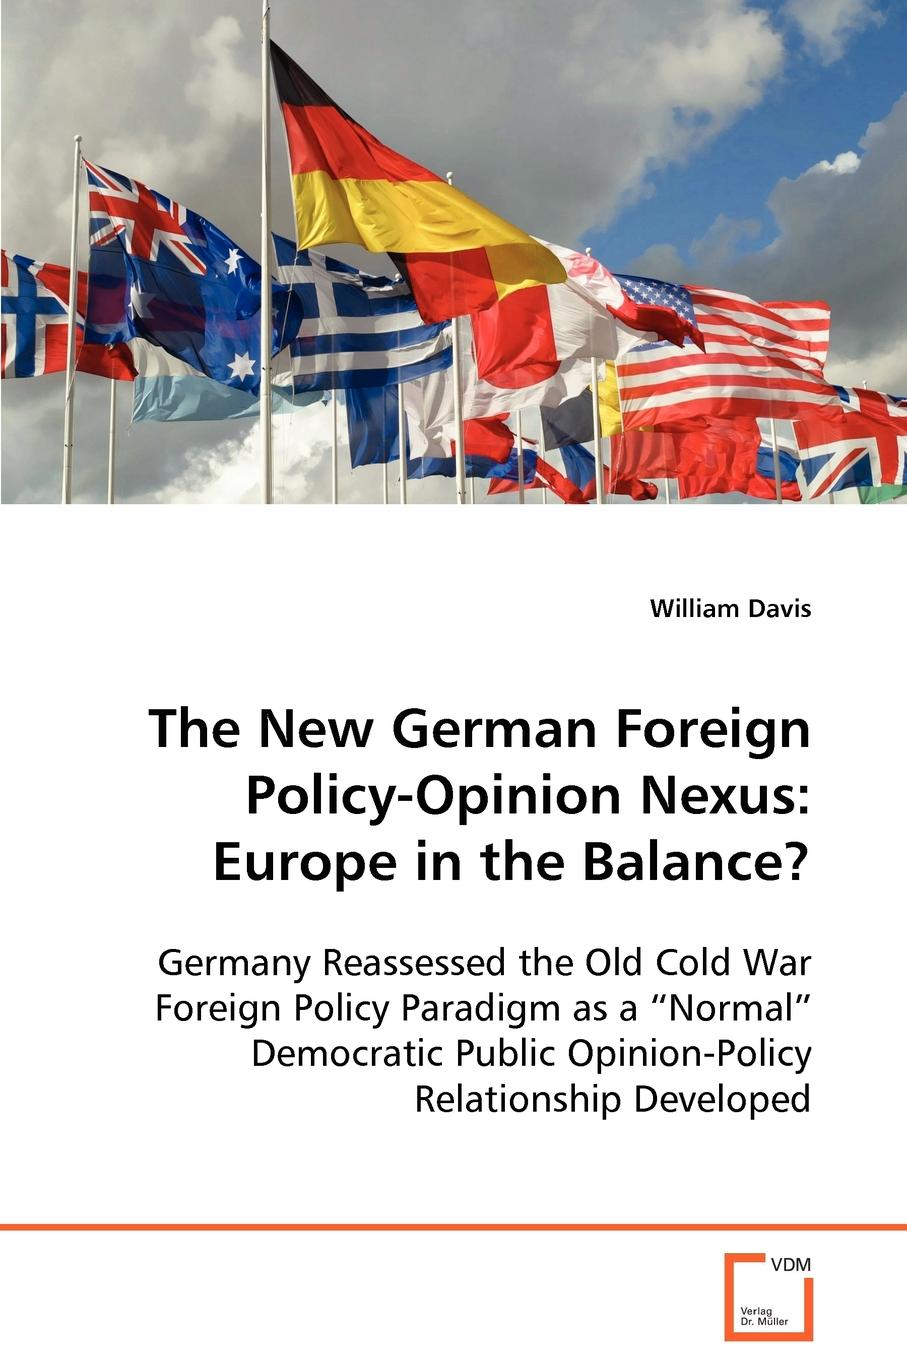 William Davis The New German Foreign Policy-Opinion Nexus. Europe in the Balance.